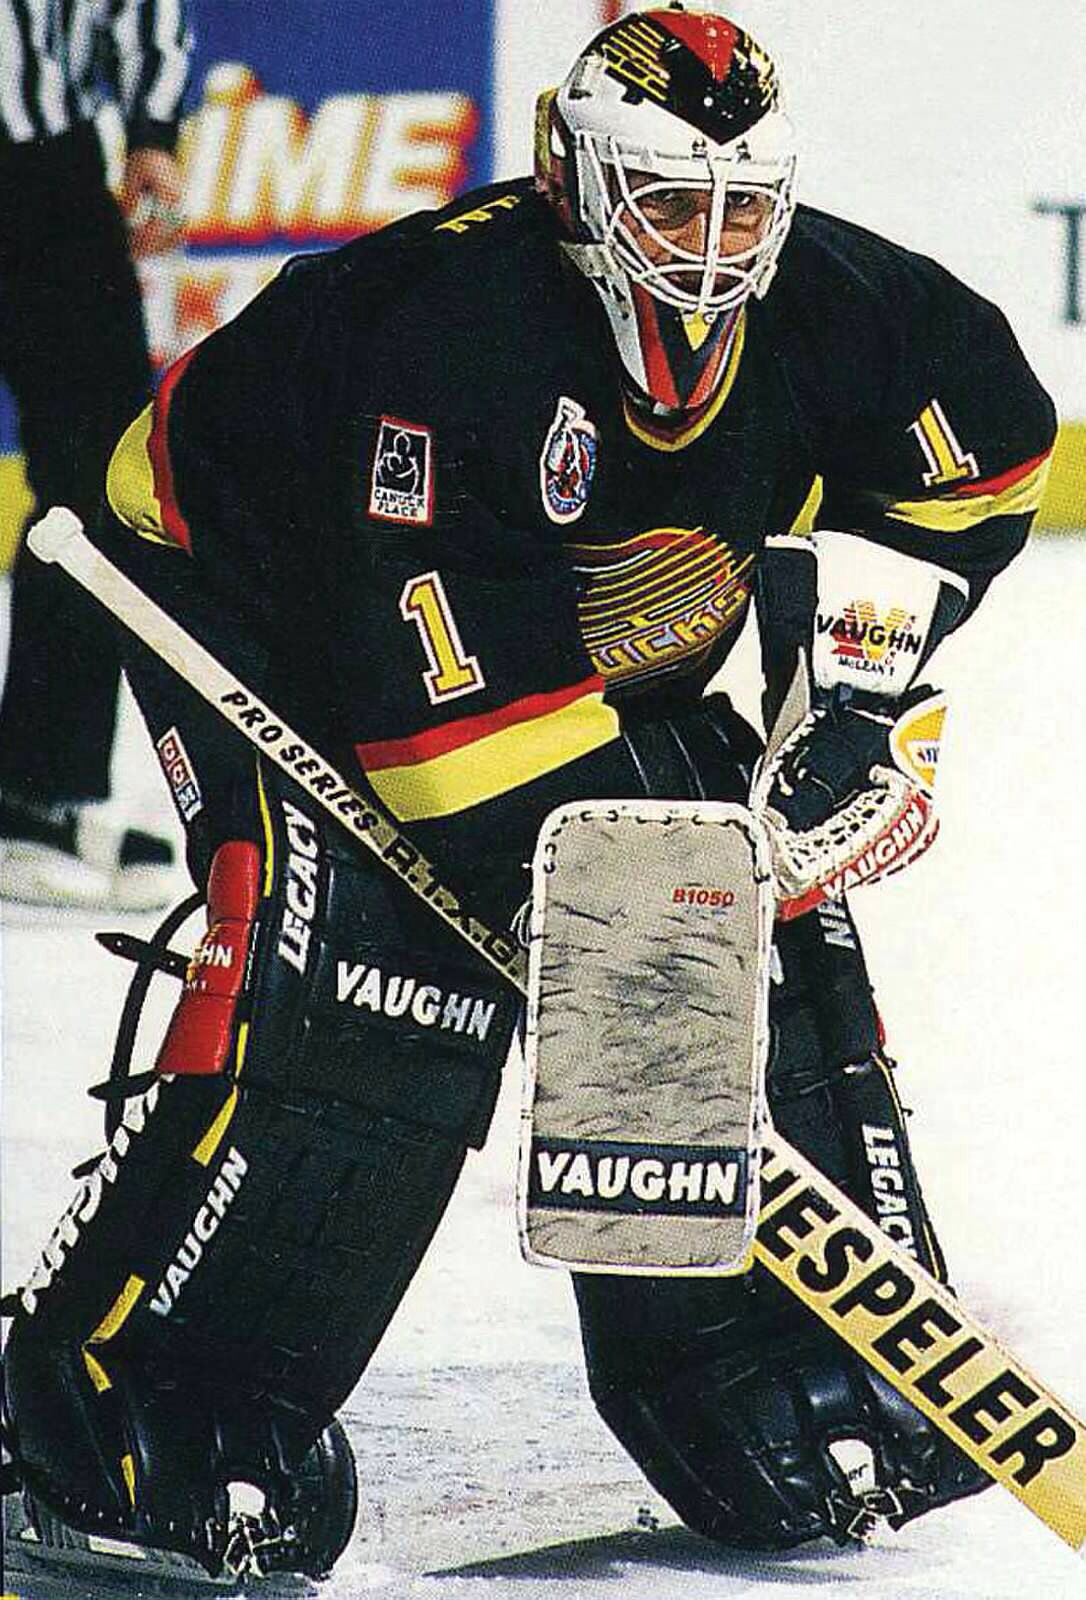 Who could forget the amazing  94 Playoff run by the Canucks in which the team  along with Kirk McLean came within 1 game of winning the Stanley Cup. fc55a7fd5